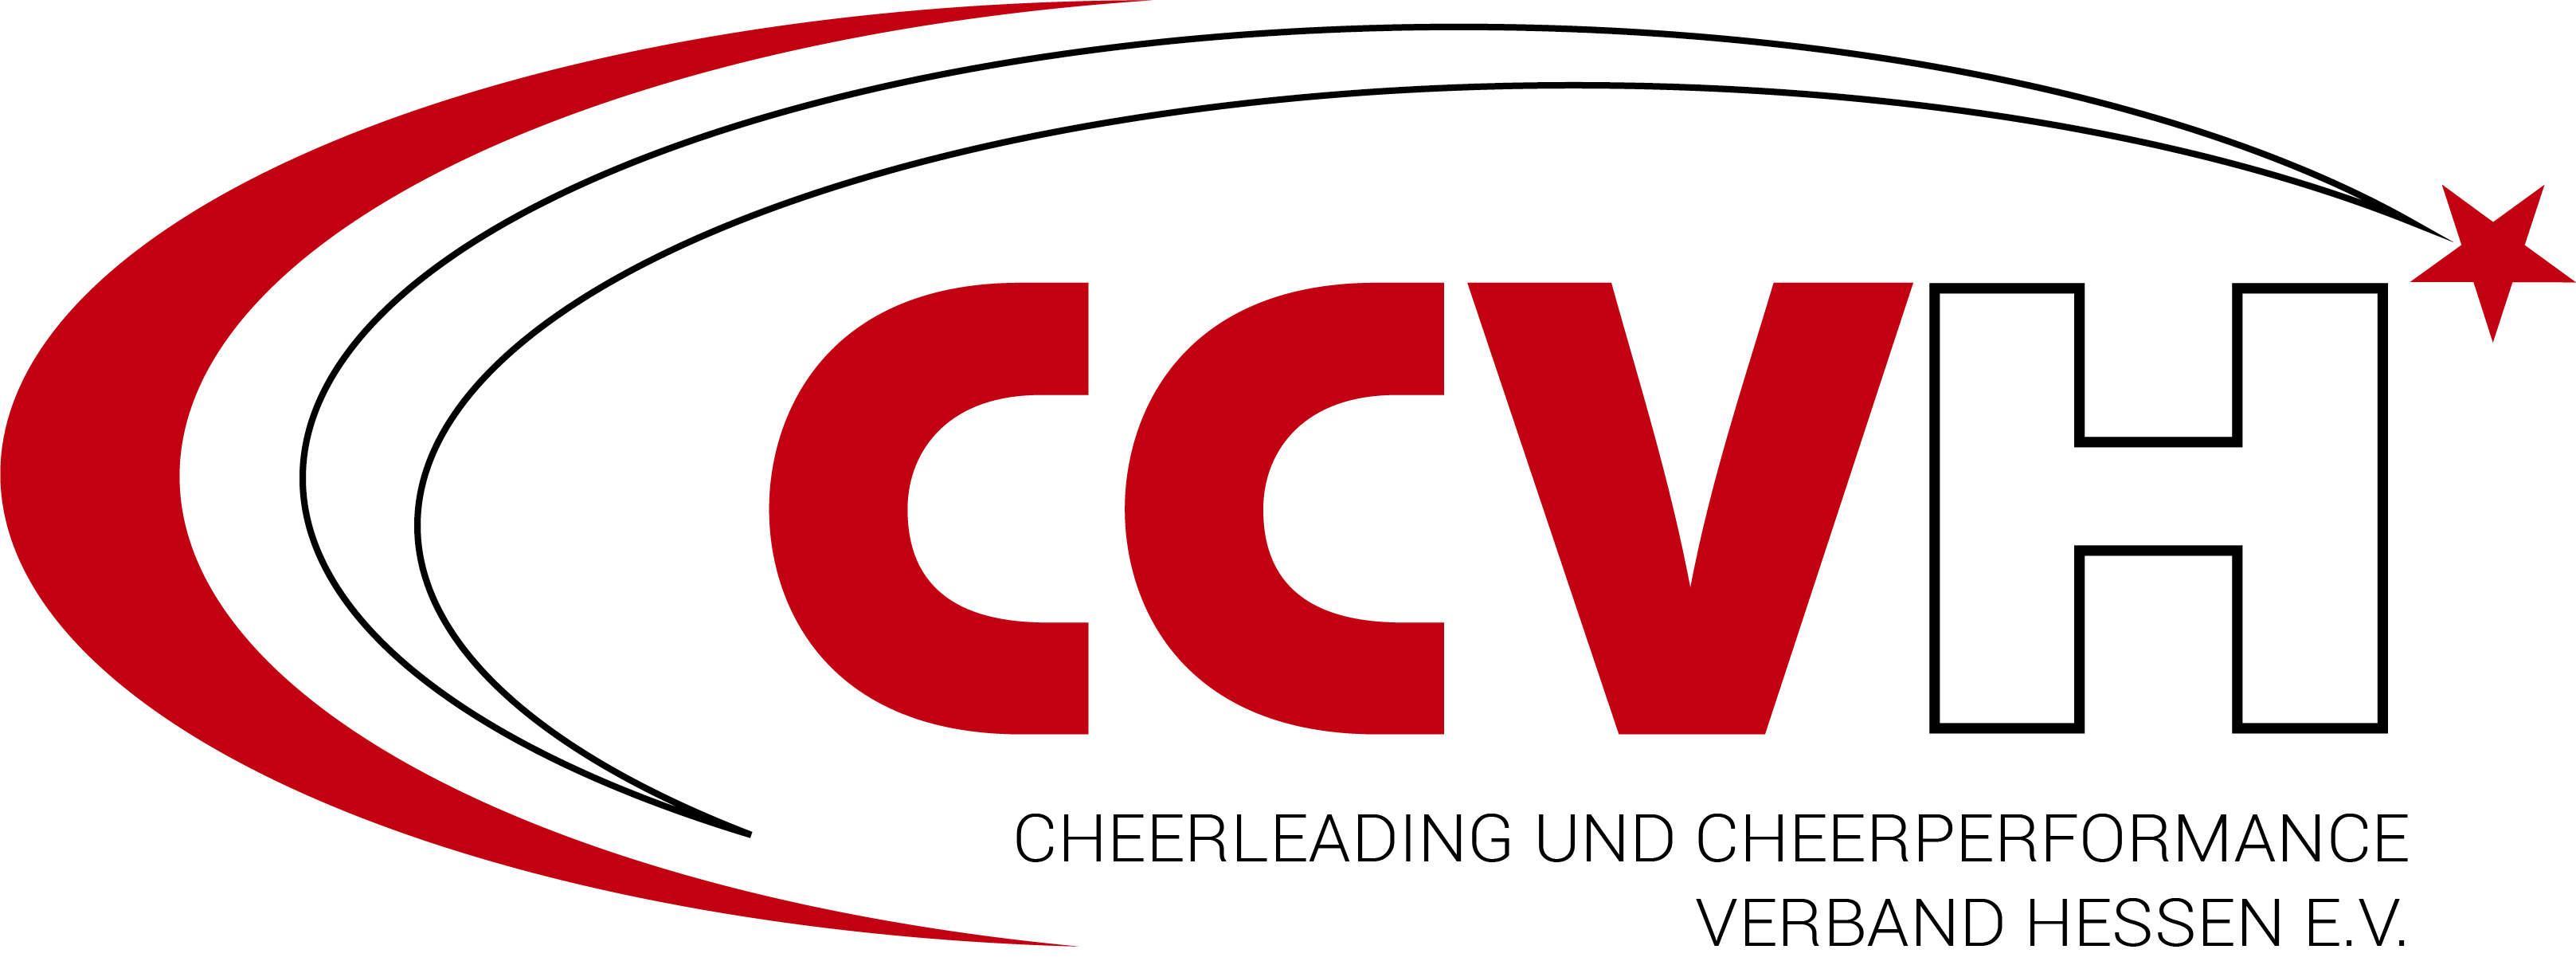 Cheerleading &  Cheerperformance Verband Hessen e.V.